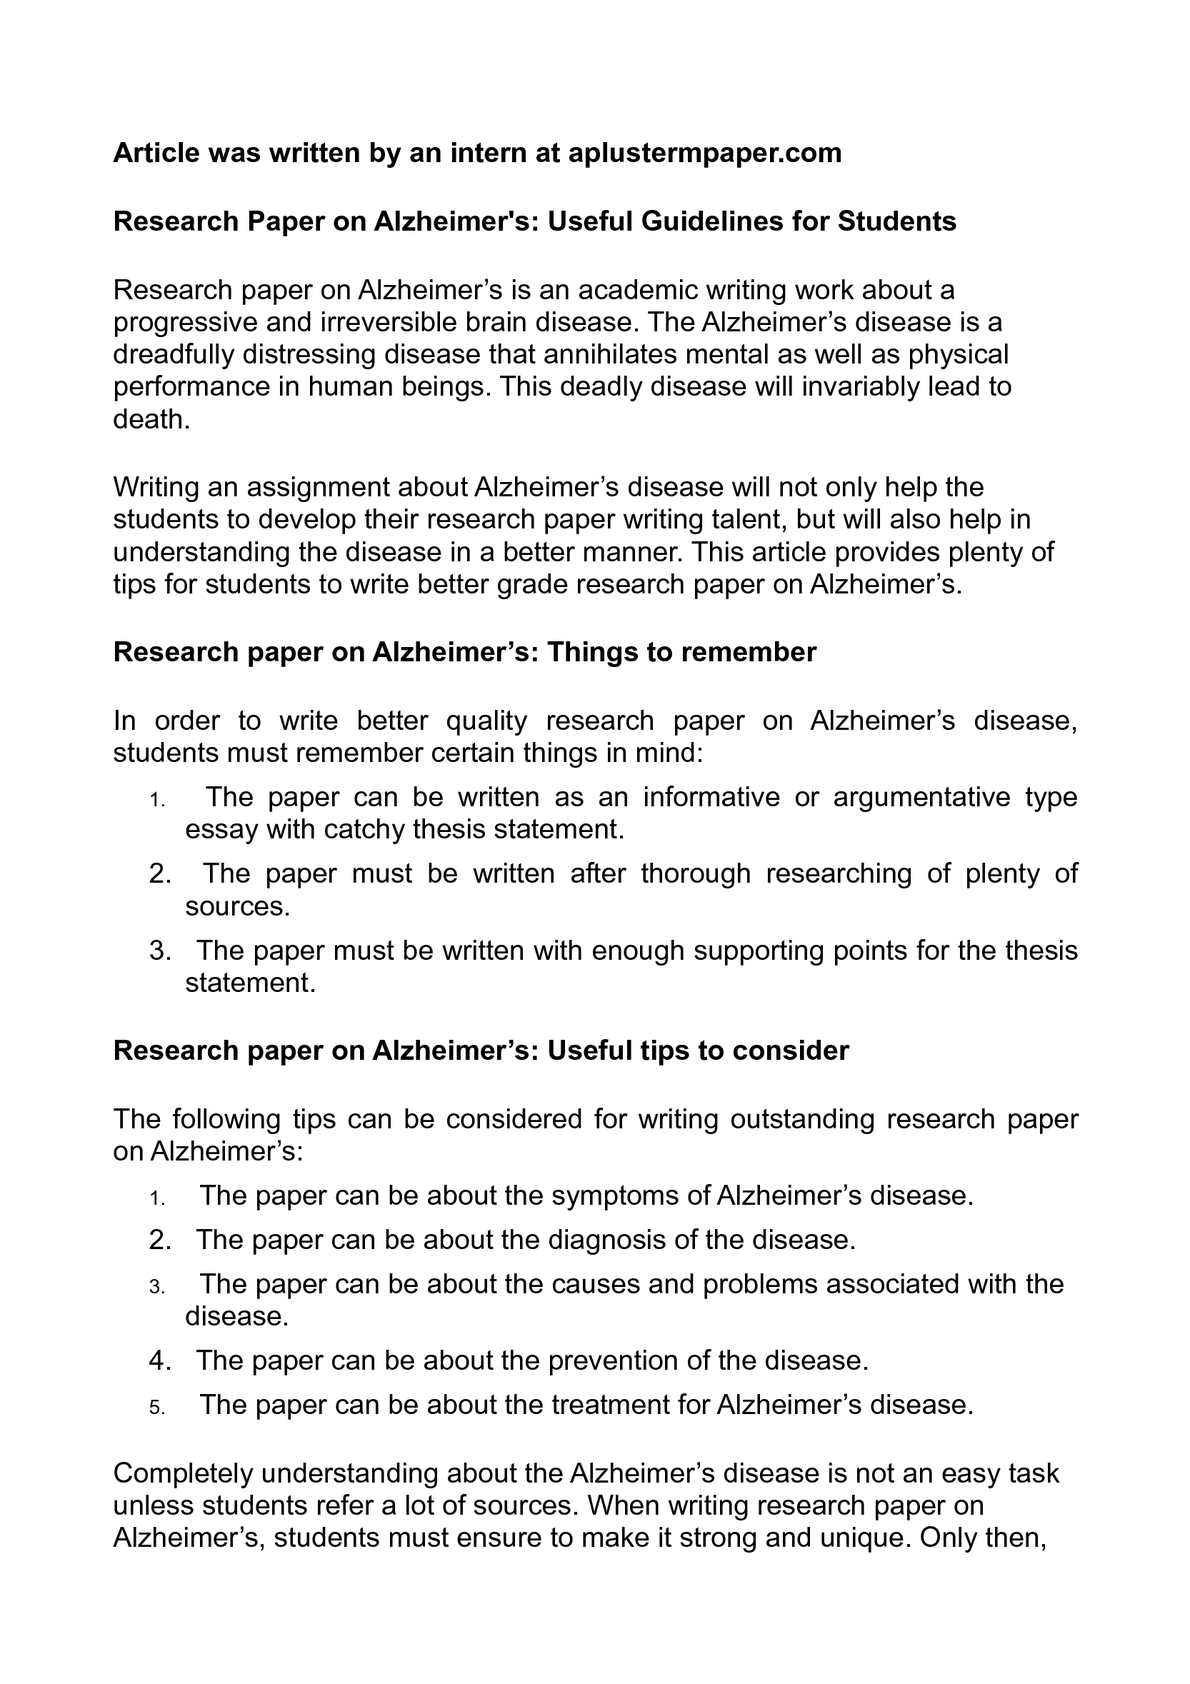 002 Research Paper Alzheimers Disease Introduction Fantastic Alzheimer's Full